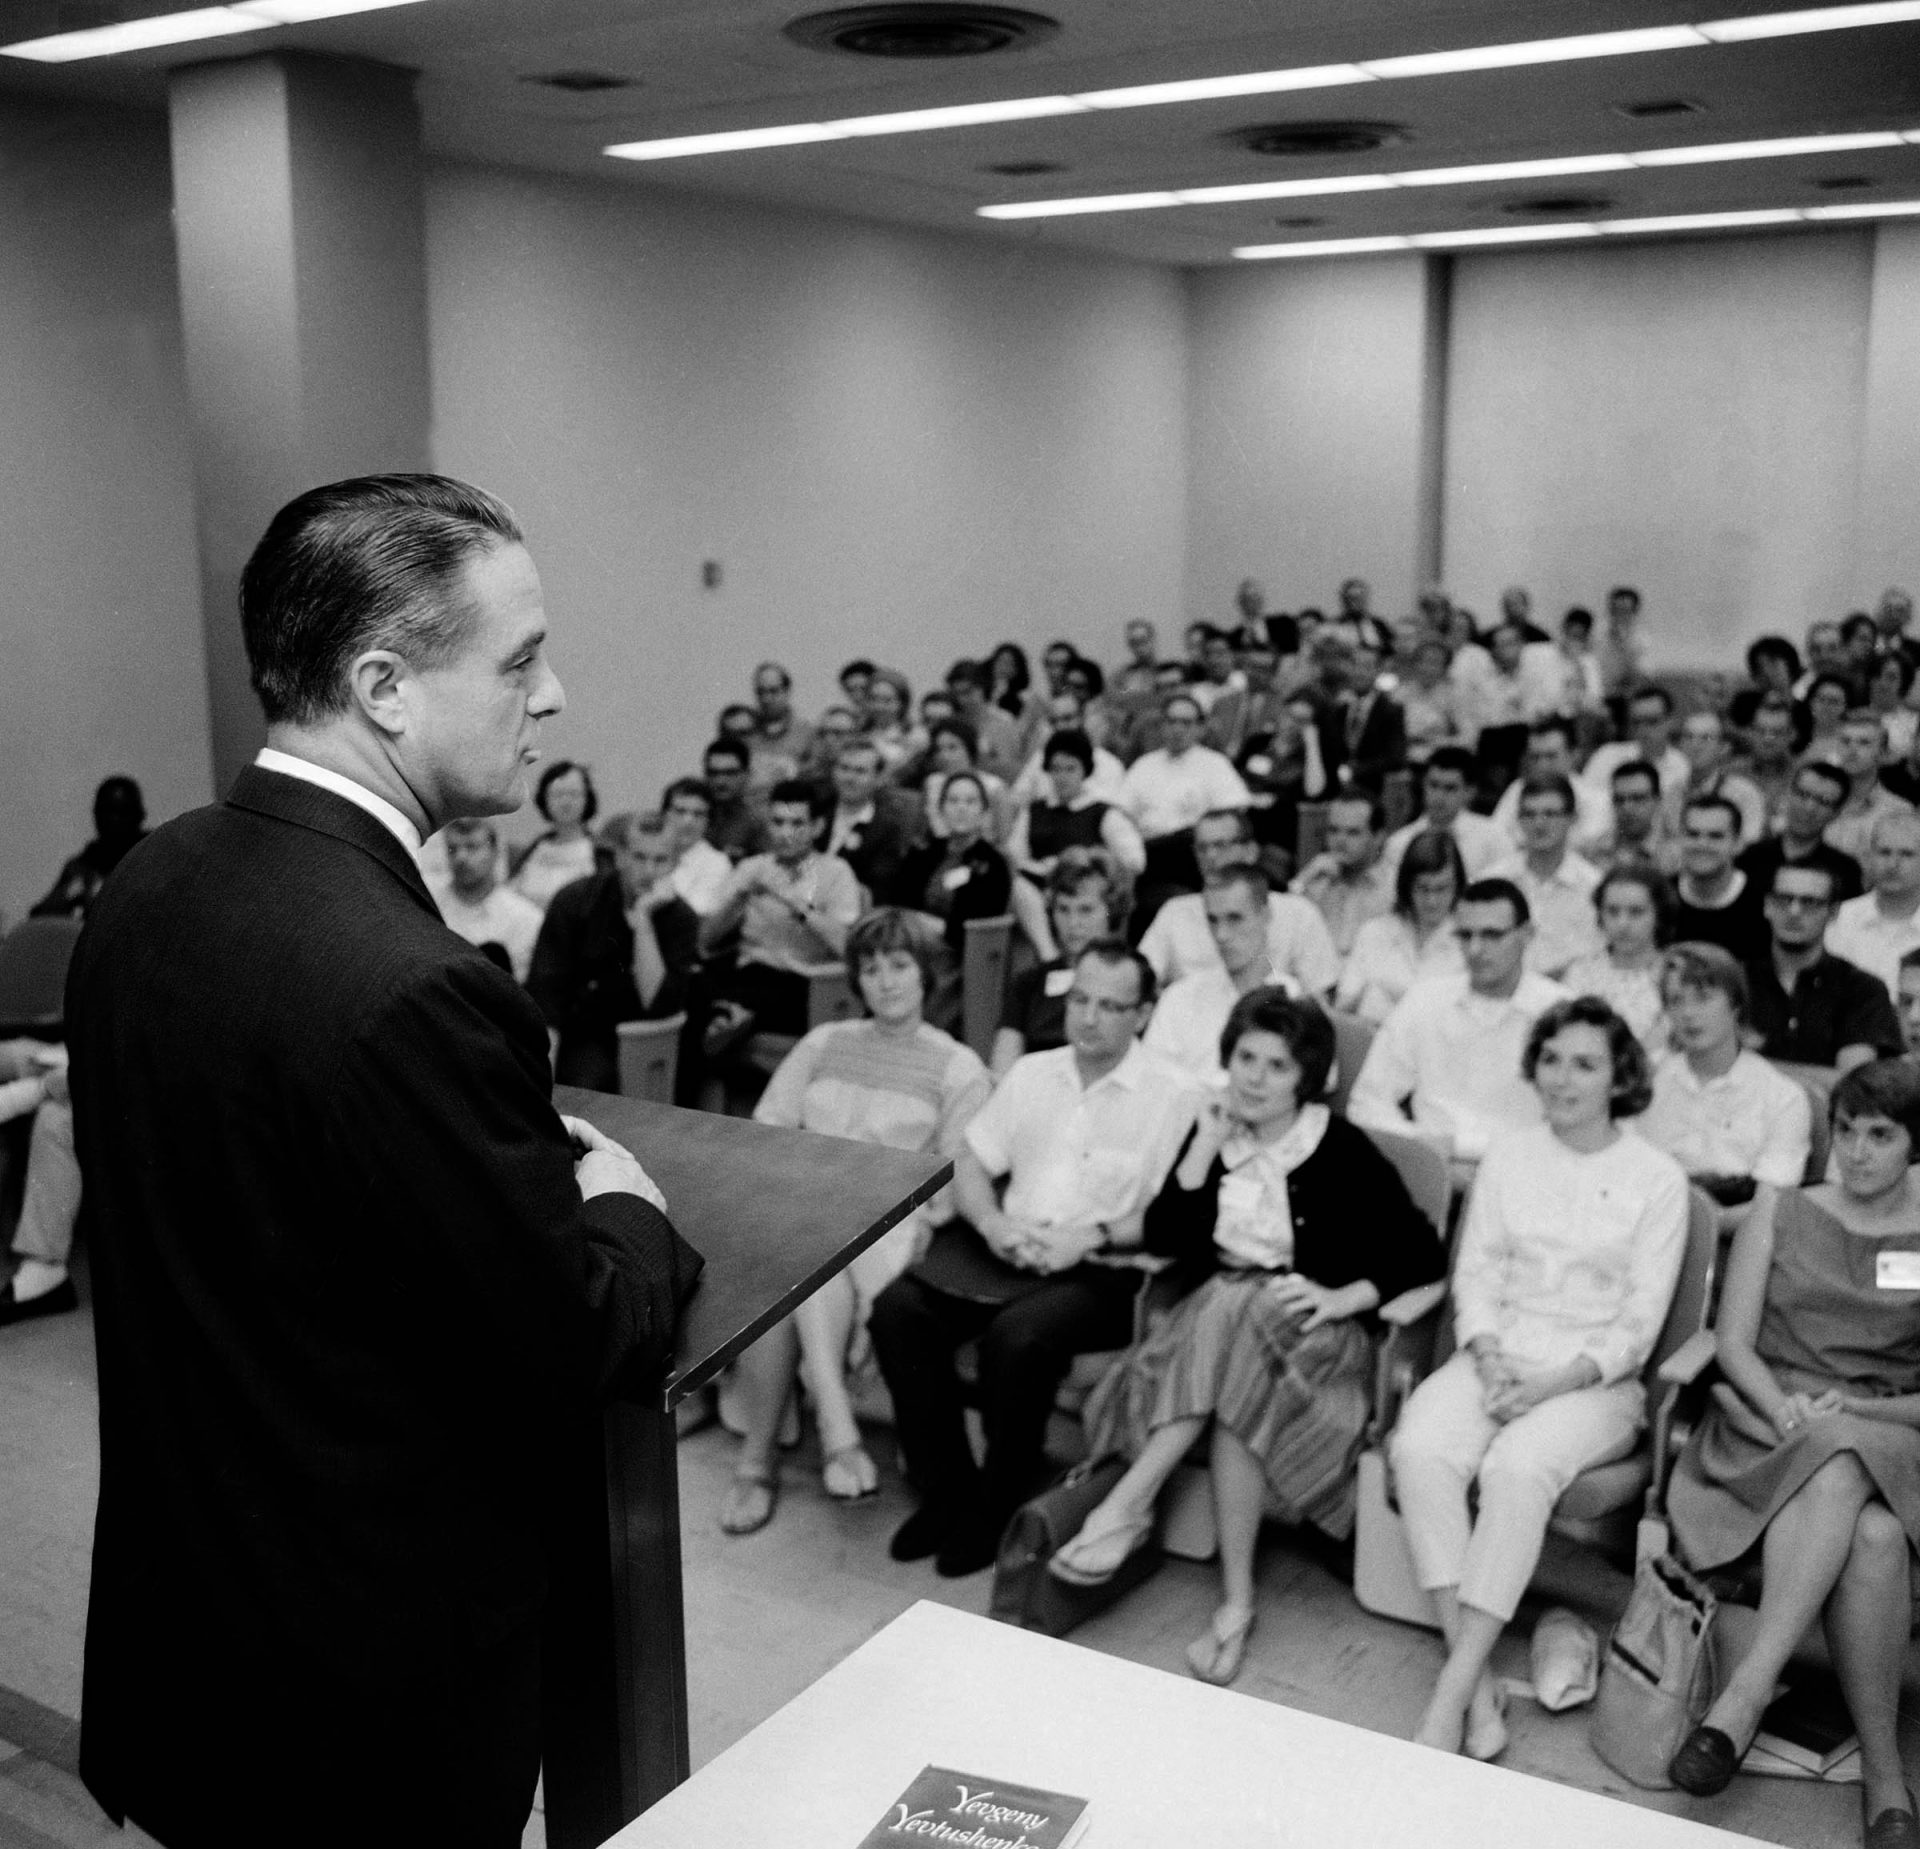 Sargent Shriver, director of the Peace Corps, addresses a group of 200 young men and women nearing completion of a nine-week course to prepare them for service in Nigeria, at Columbia University in New York City, Aug. 19, 1963. Graduates of the course will leave New York for Nigeria on Sept. 10.